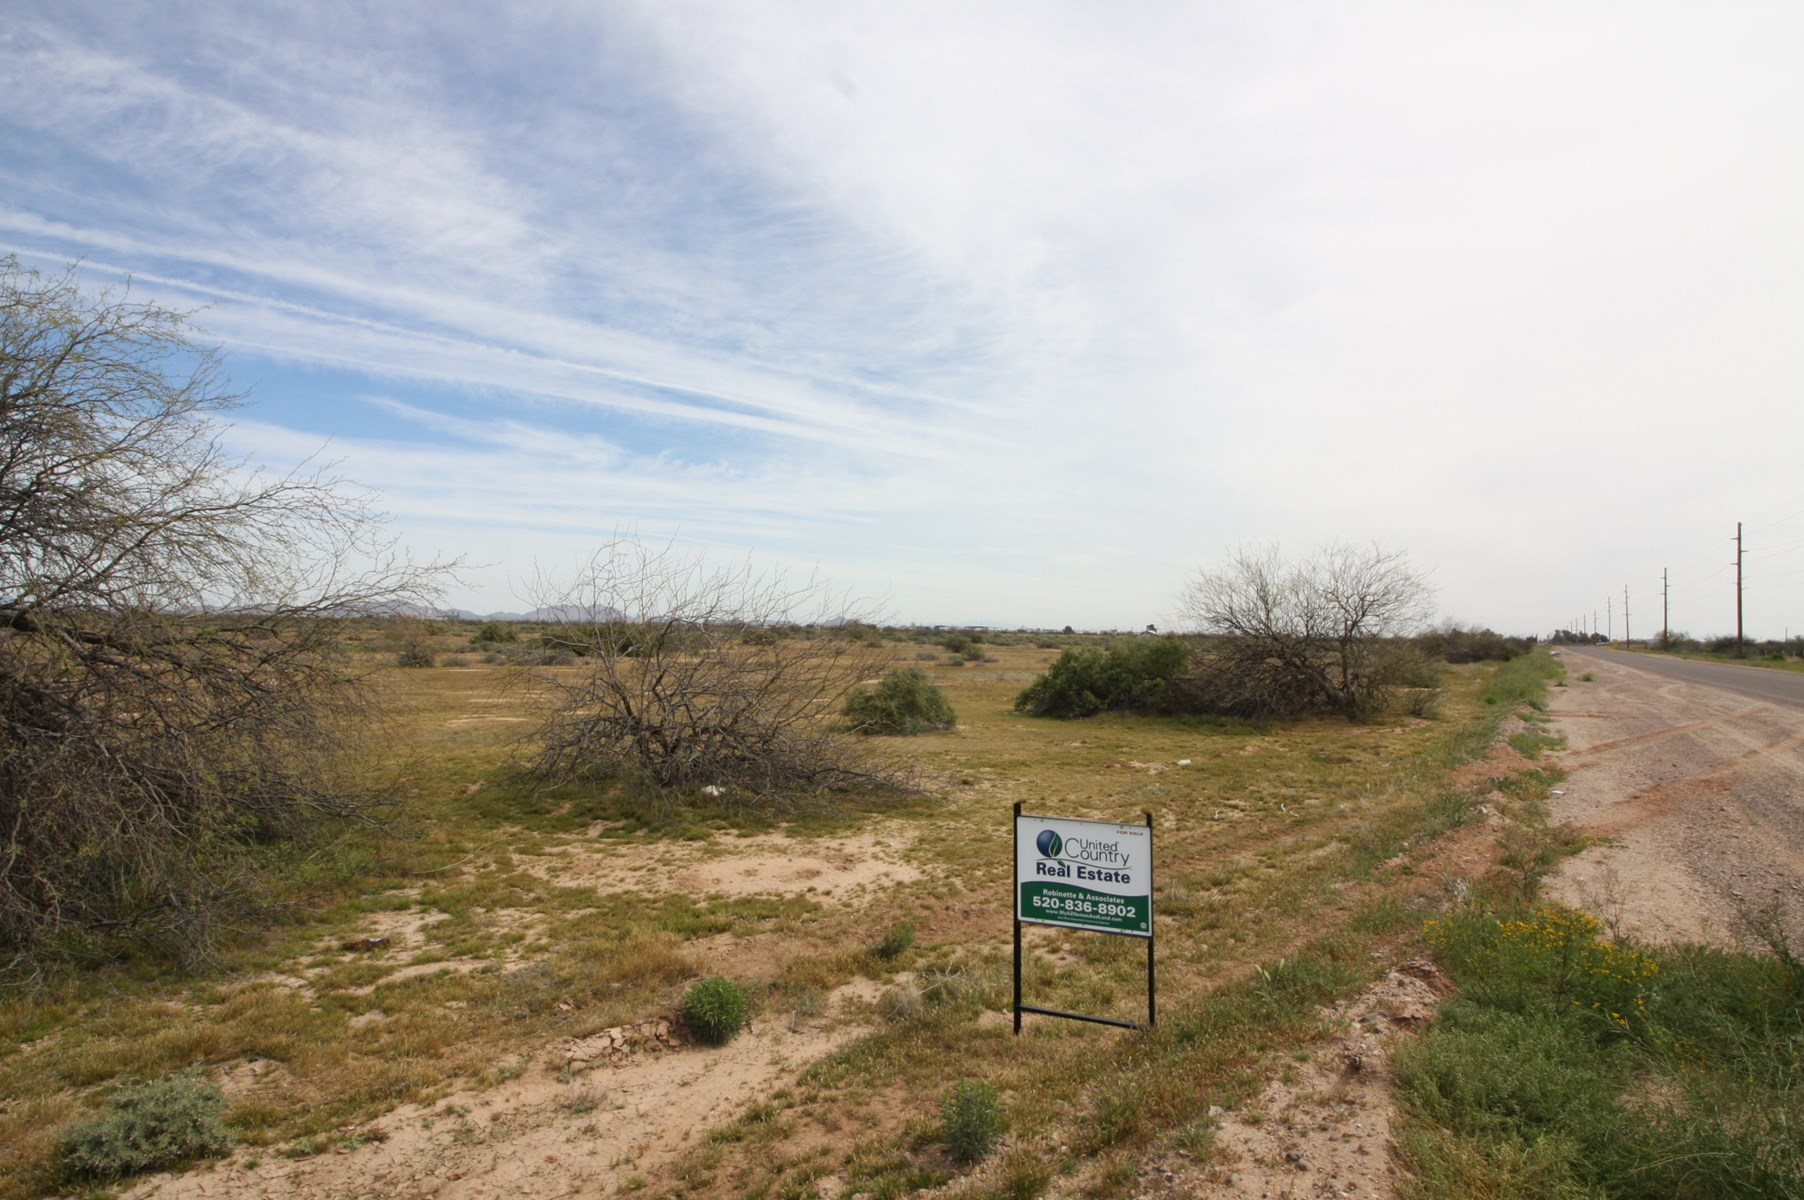 Land for sale Casa Grande AZ, Horse property for sale AZ